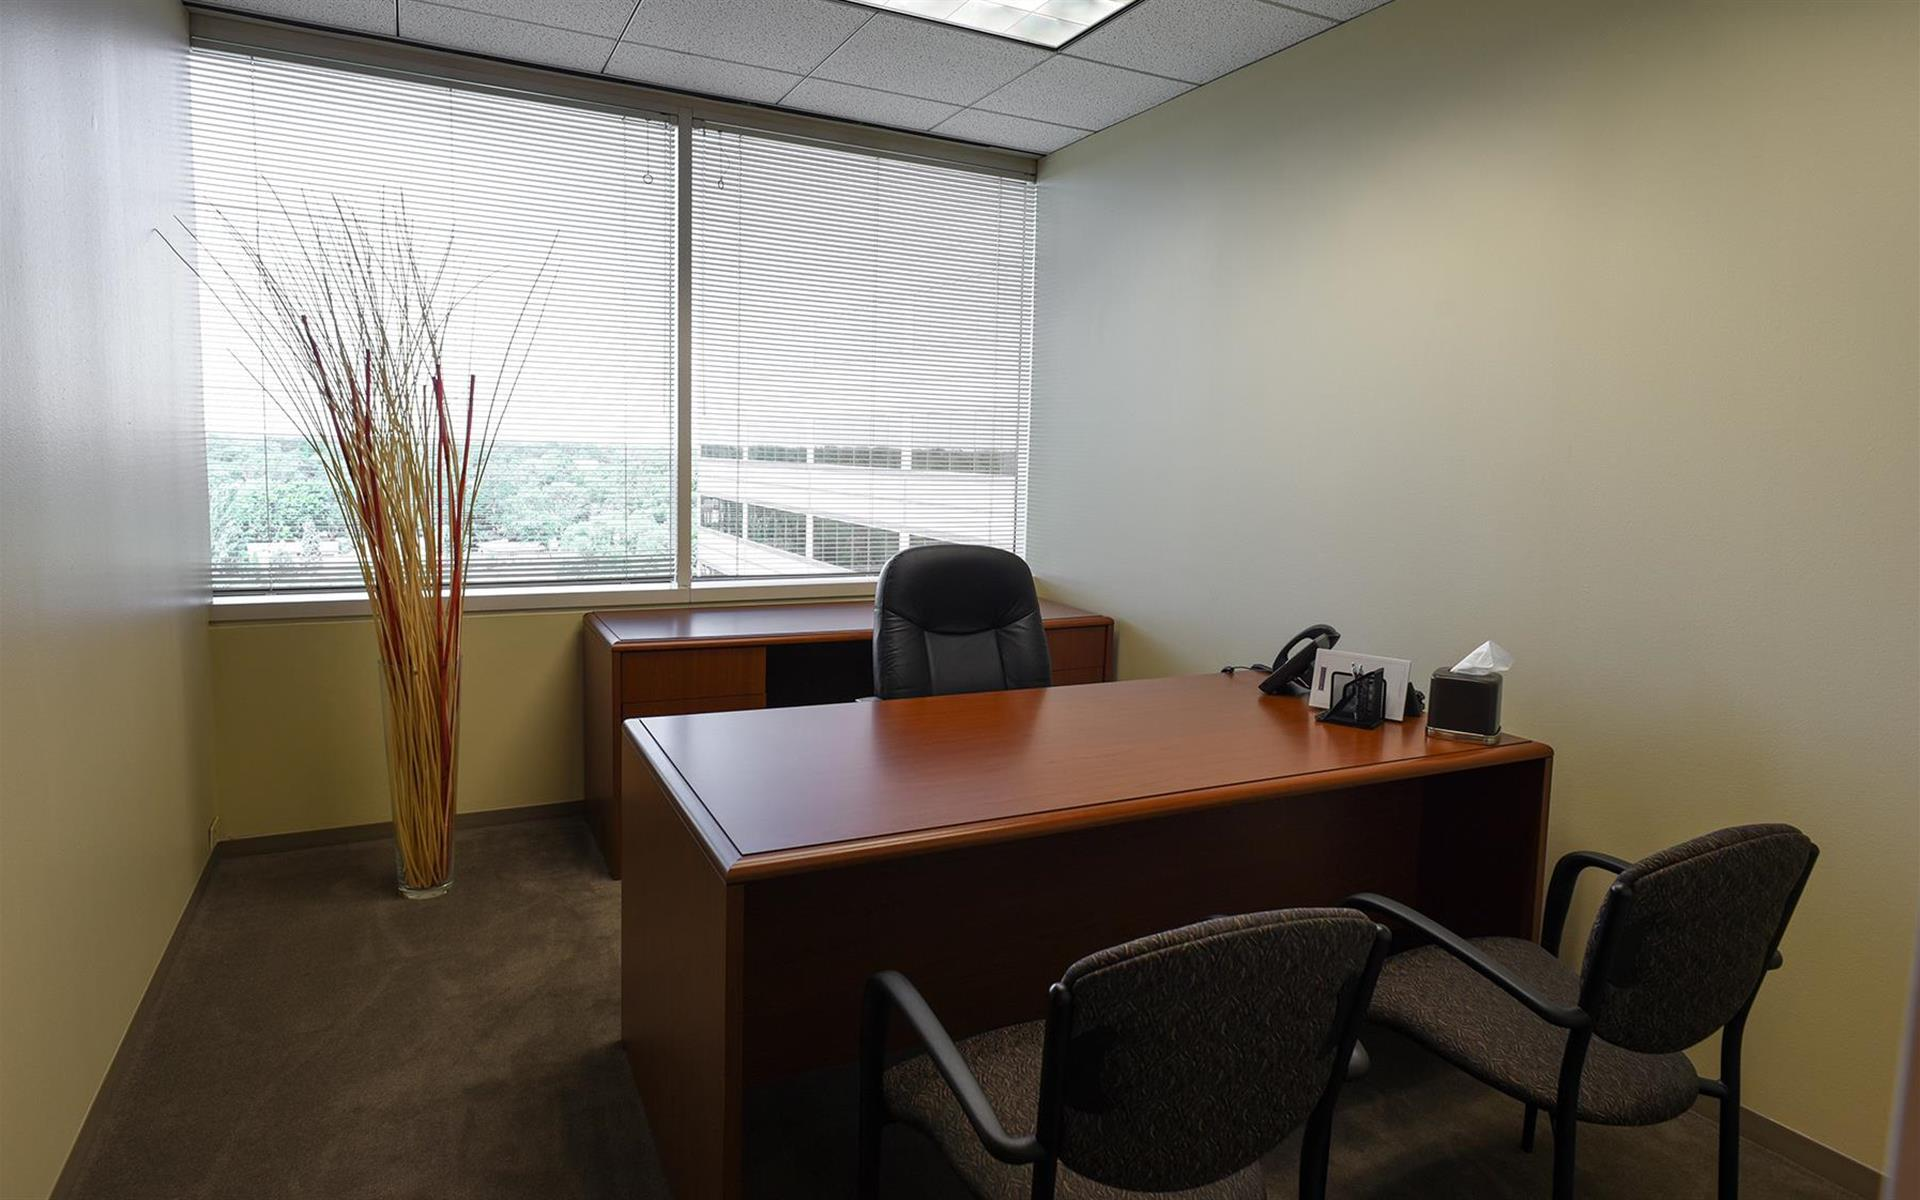 My Office Suite - Oakbrook - Day Office 804 (window)